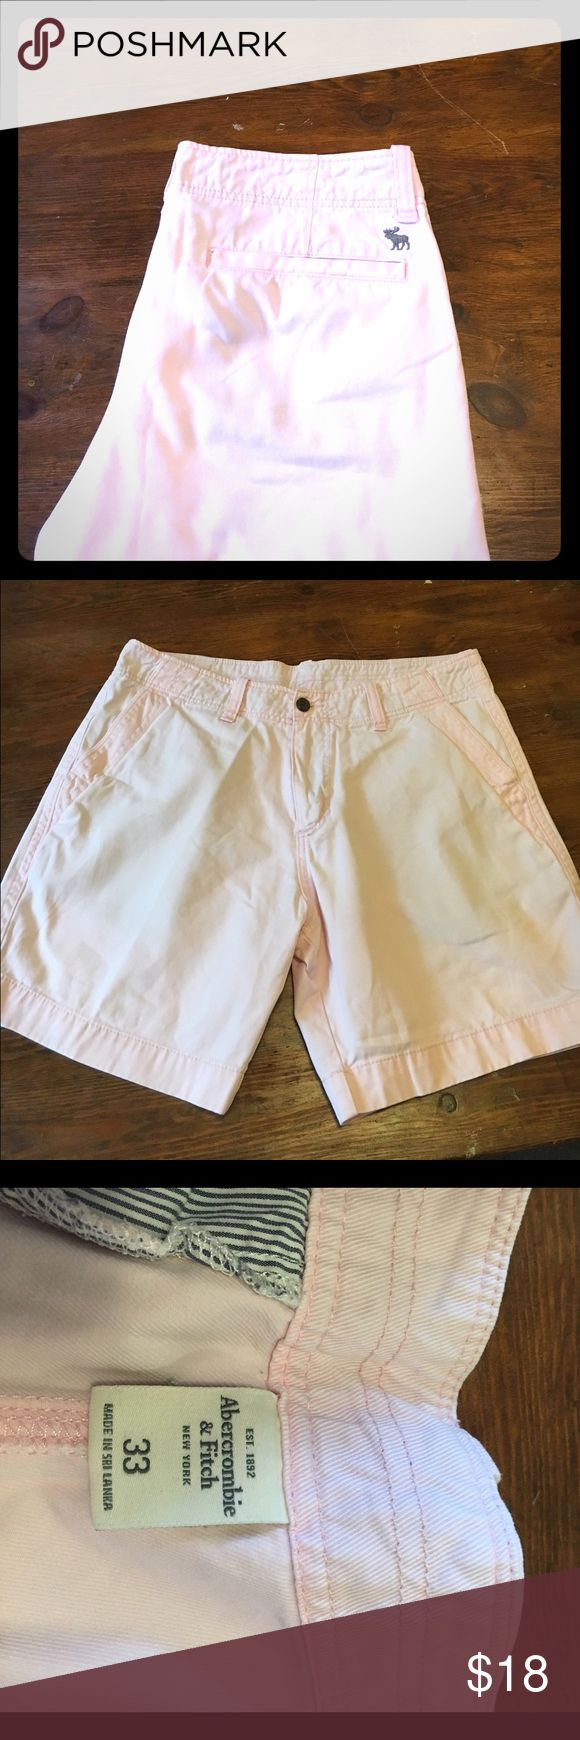 Men's Abercrombie & Fitch Pink Shorts Light Pink shorts! Size 33, but run more like a 34! Abercrombie & Fitch Shorts Flat Front